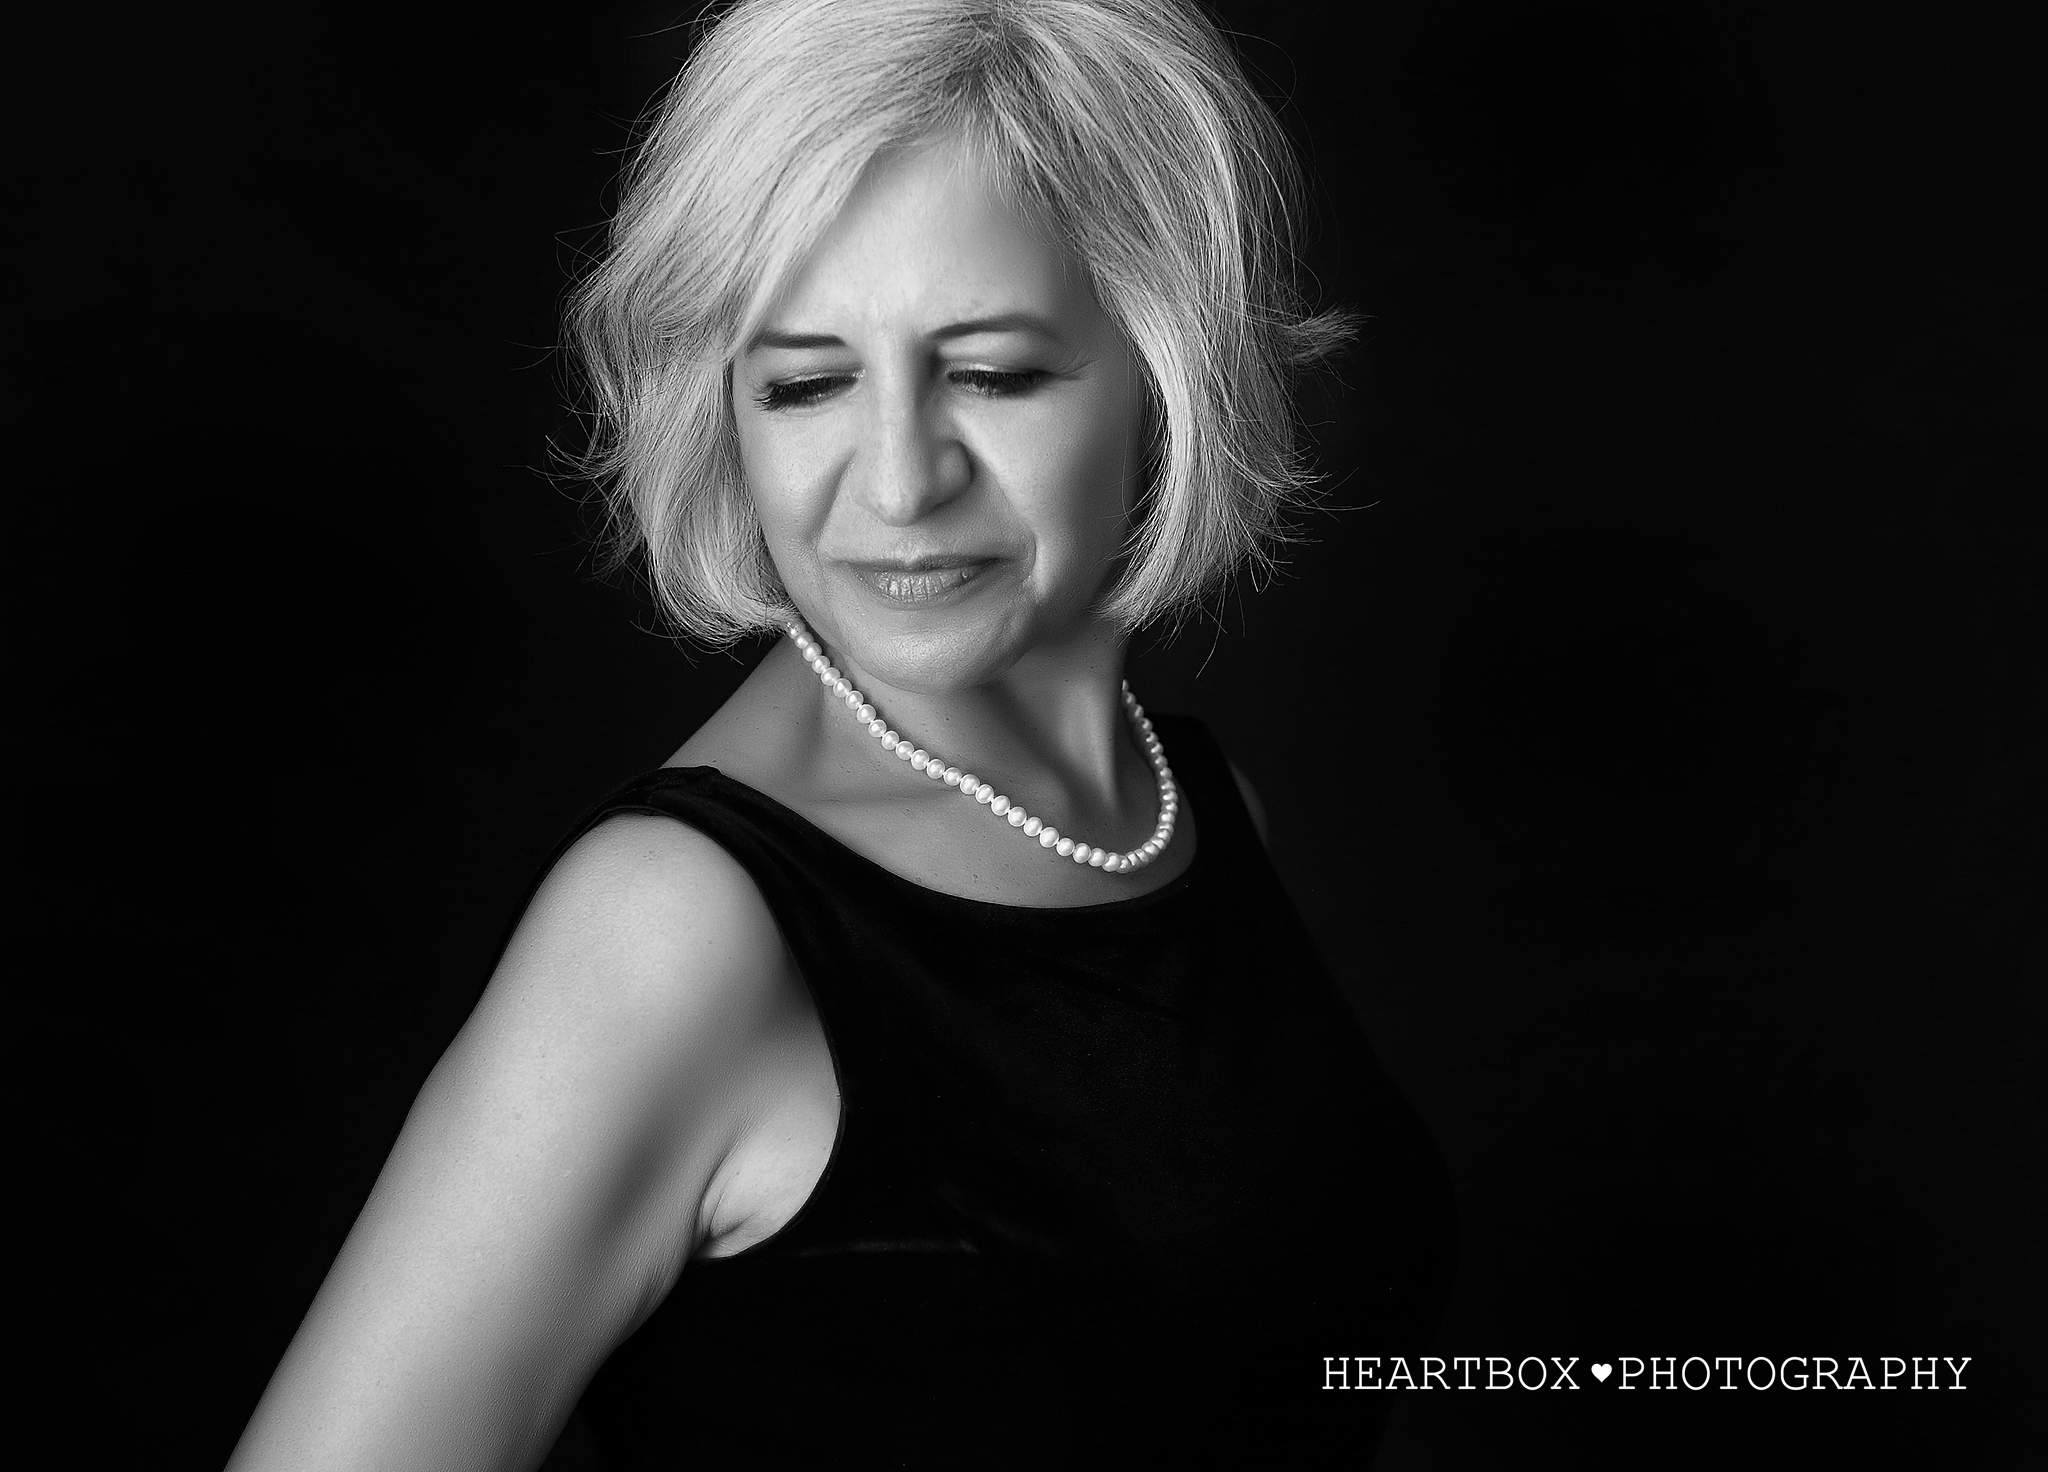 Portraits by Heartbox Photography. Copyright 2017. All rights reserved._0046.jpg